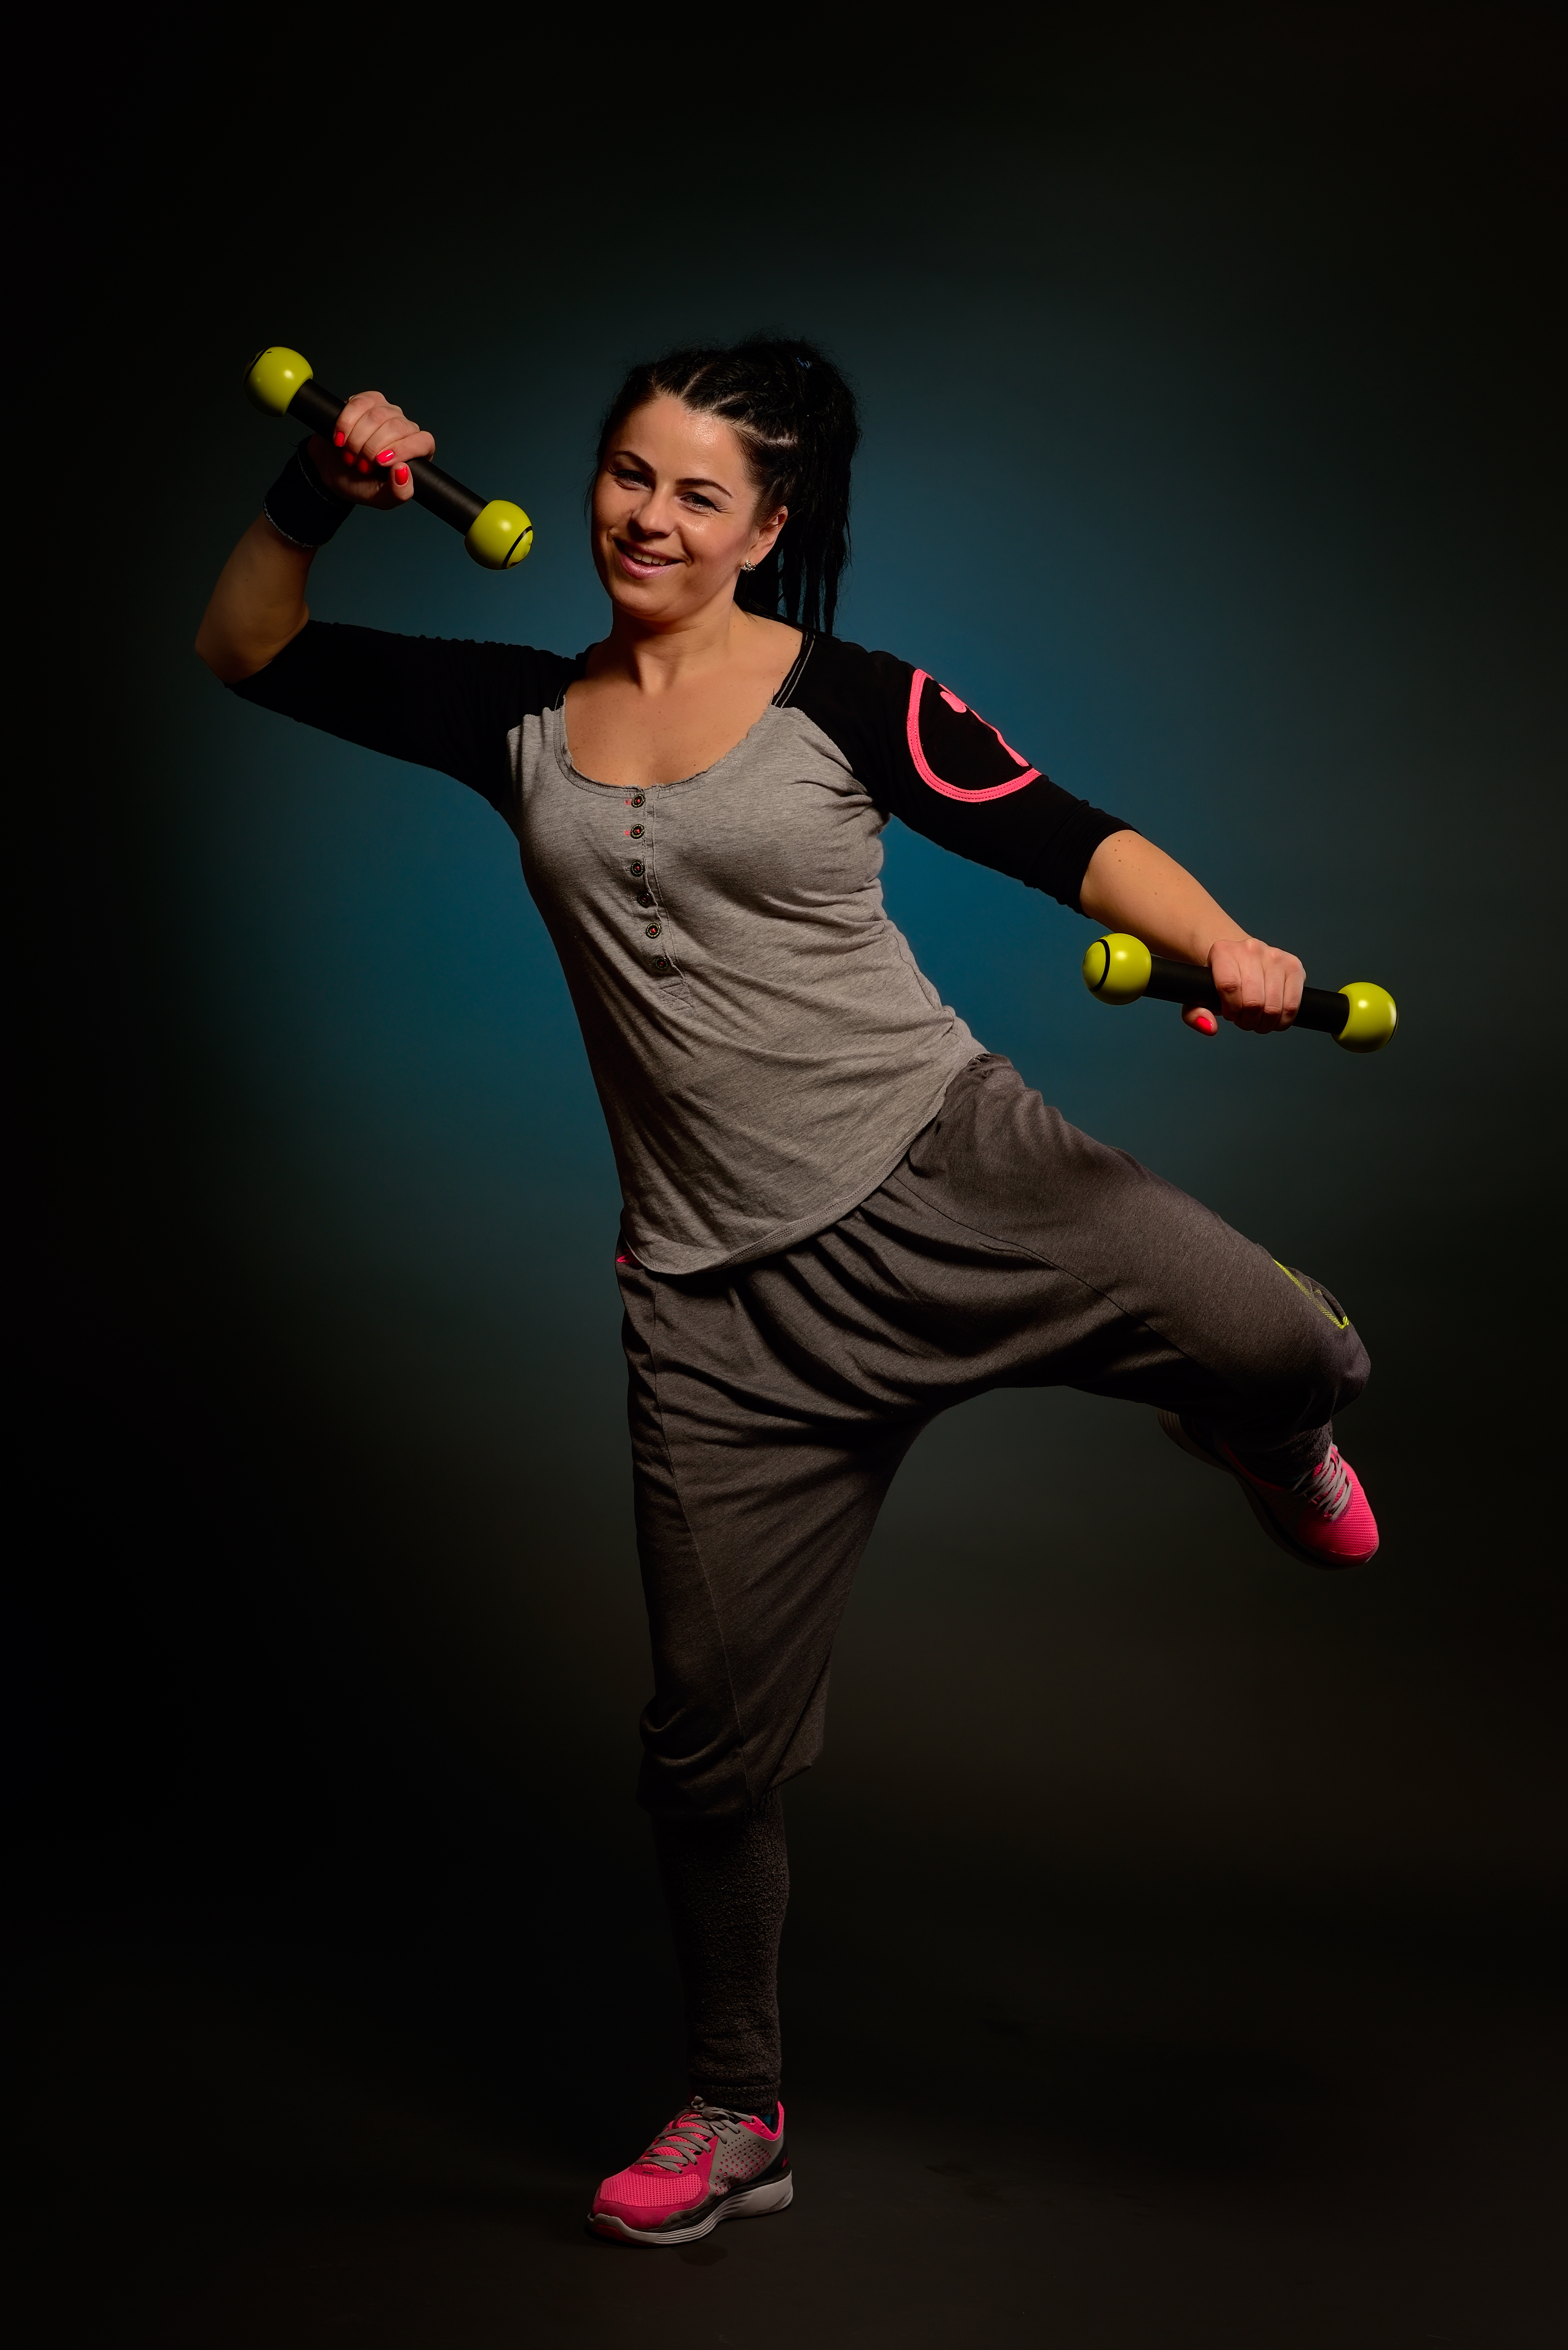 the zumba fitness craze The fitness craze that won't go away, zumba classes are a fun and highly effective workout learn more about ingrebourne's zumba classes by click here.